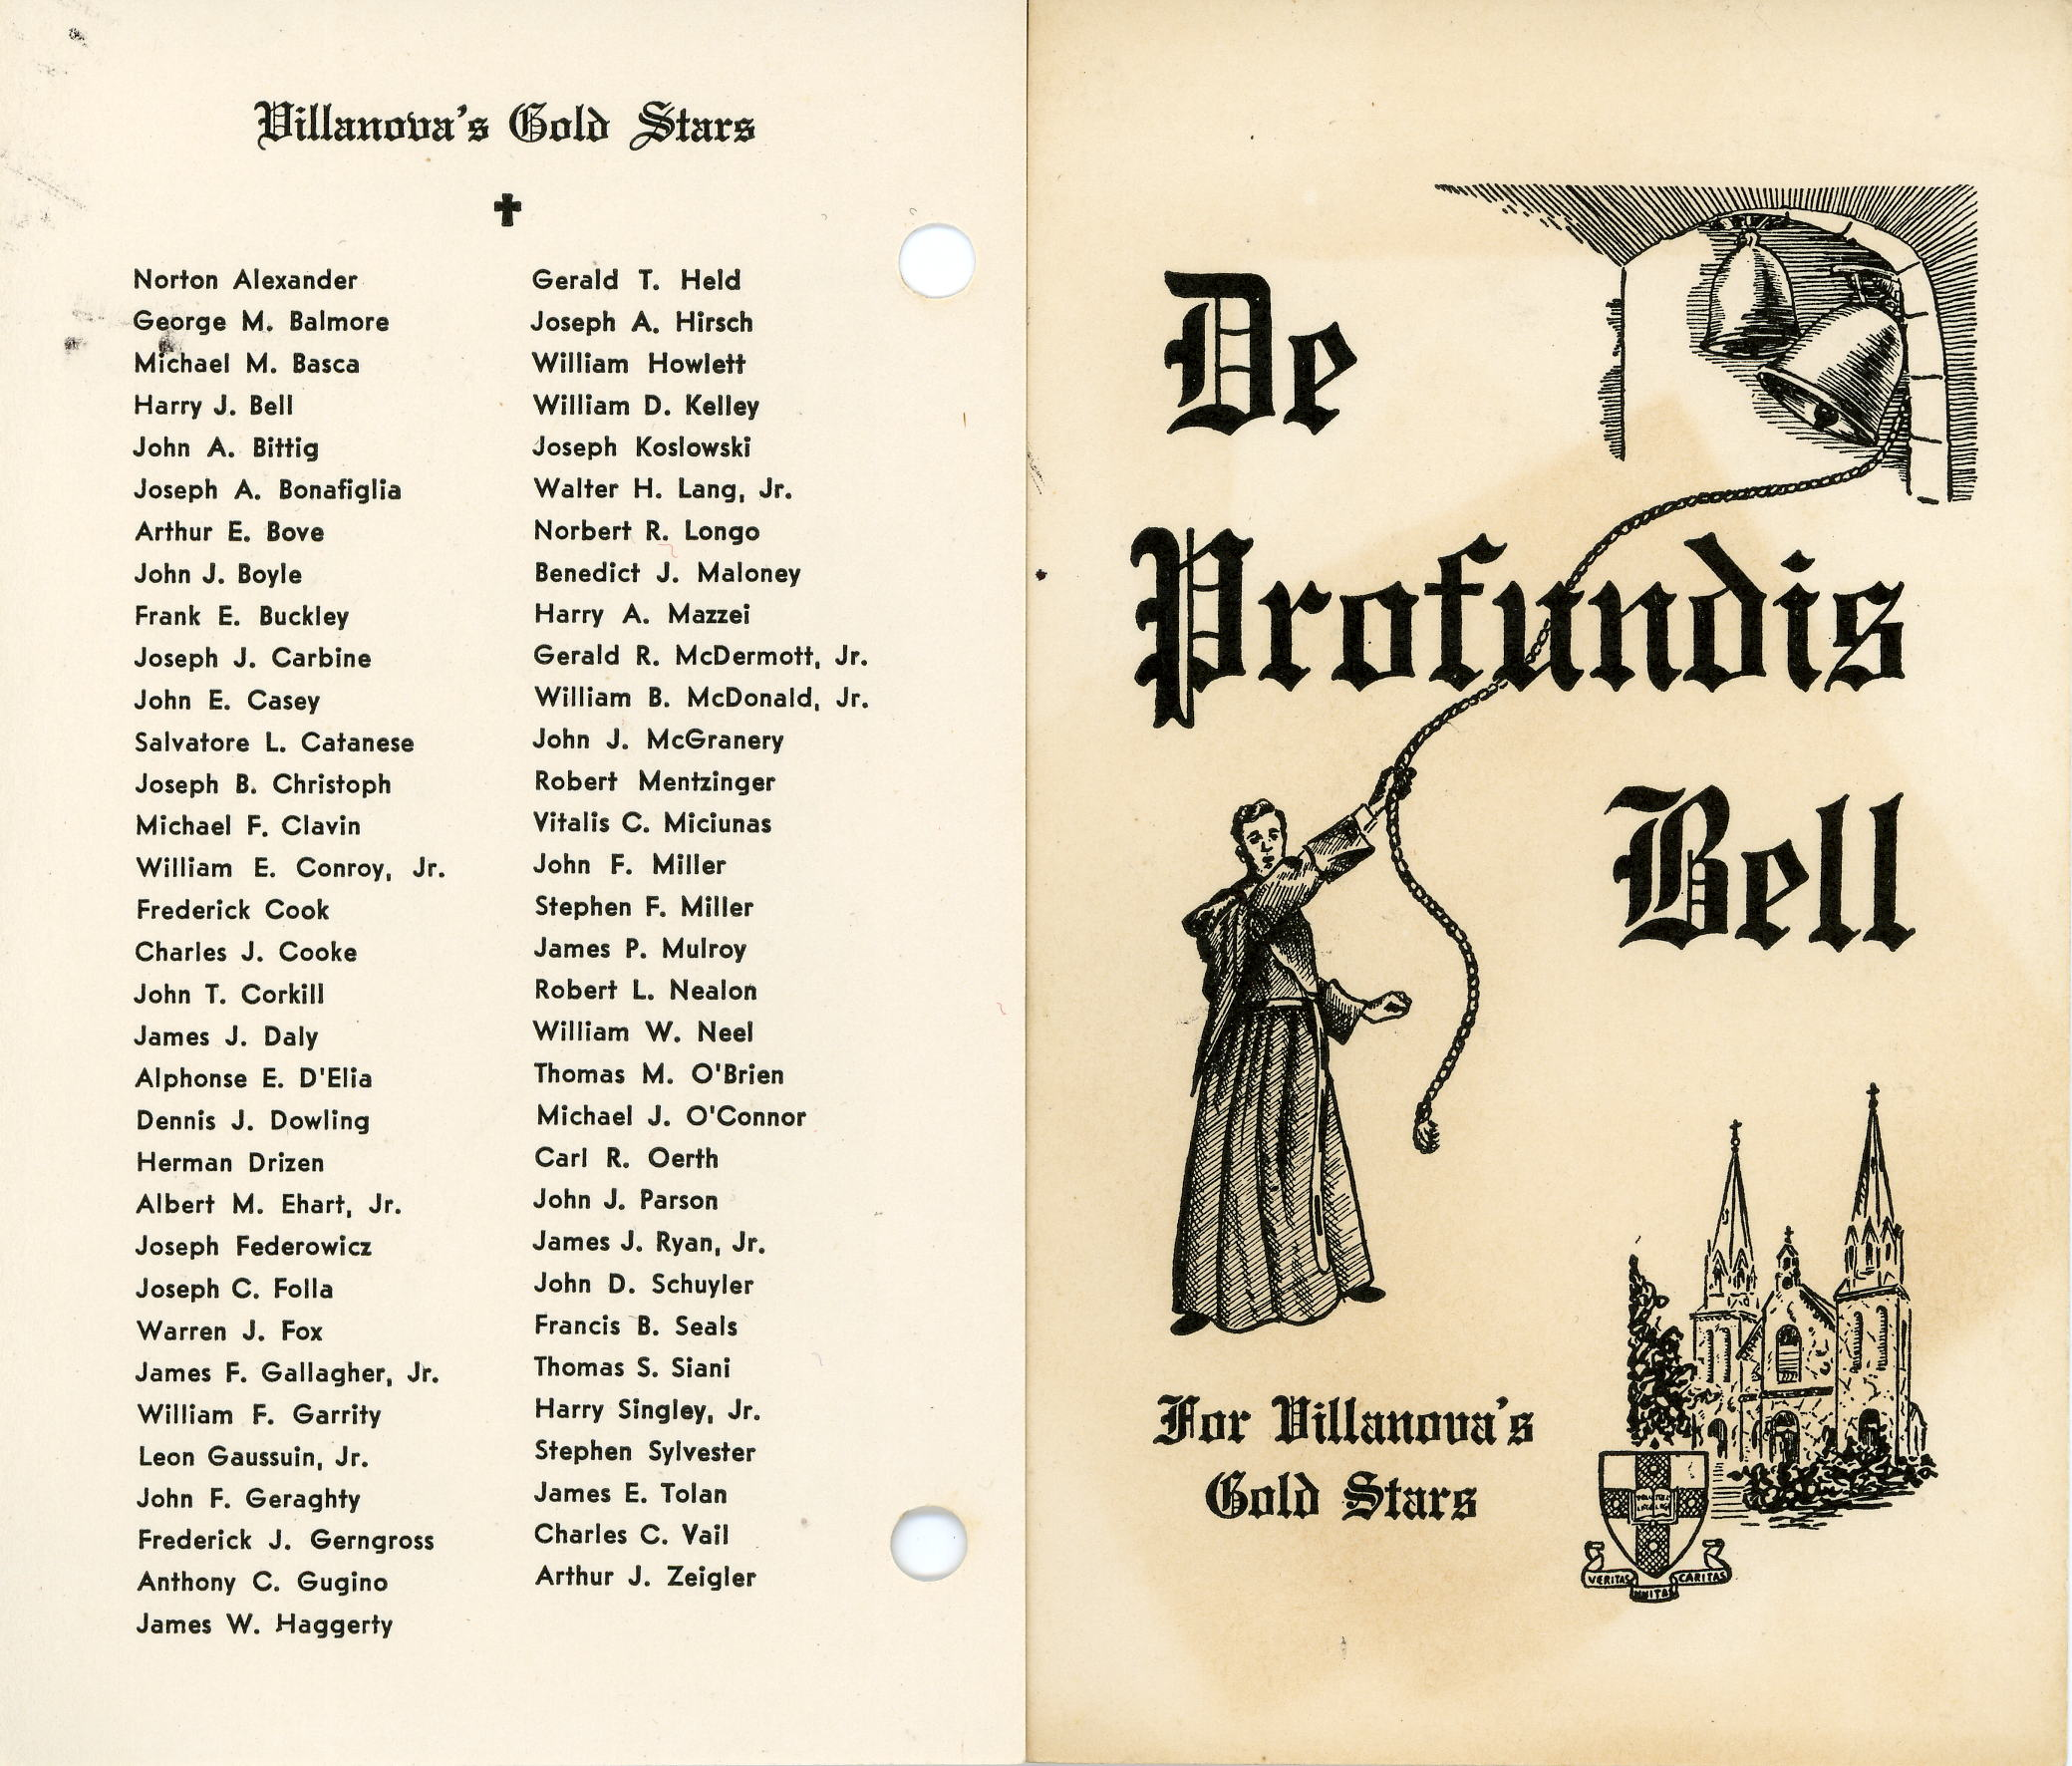 De Profundis Bell and Villanova�s Gold Stars